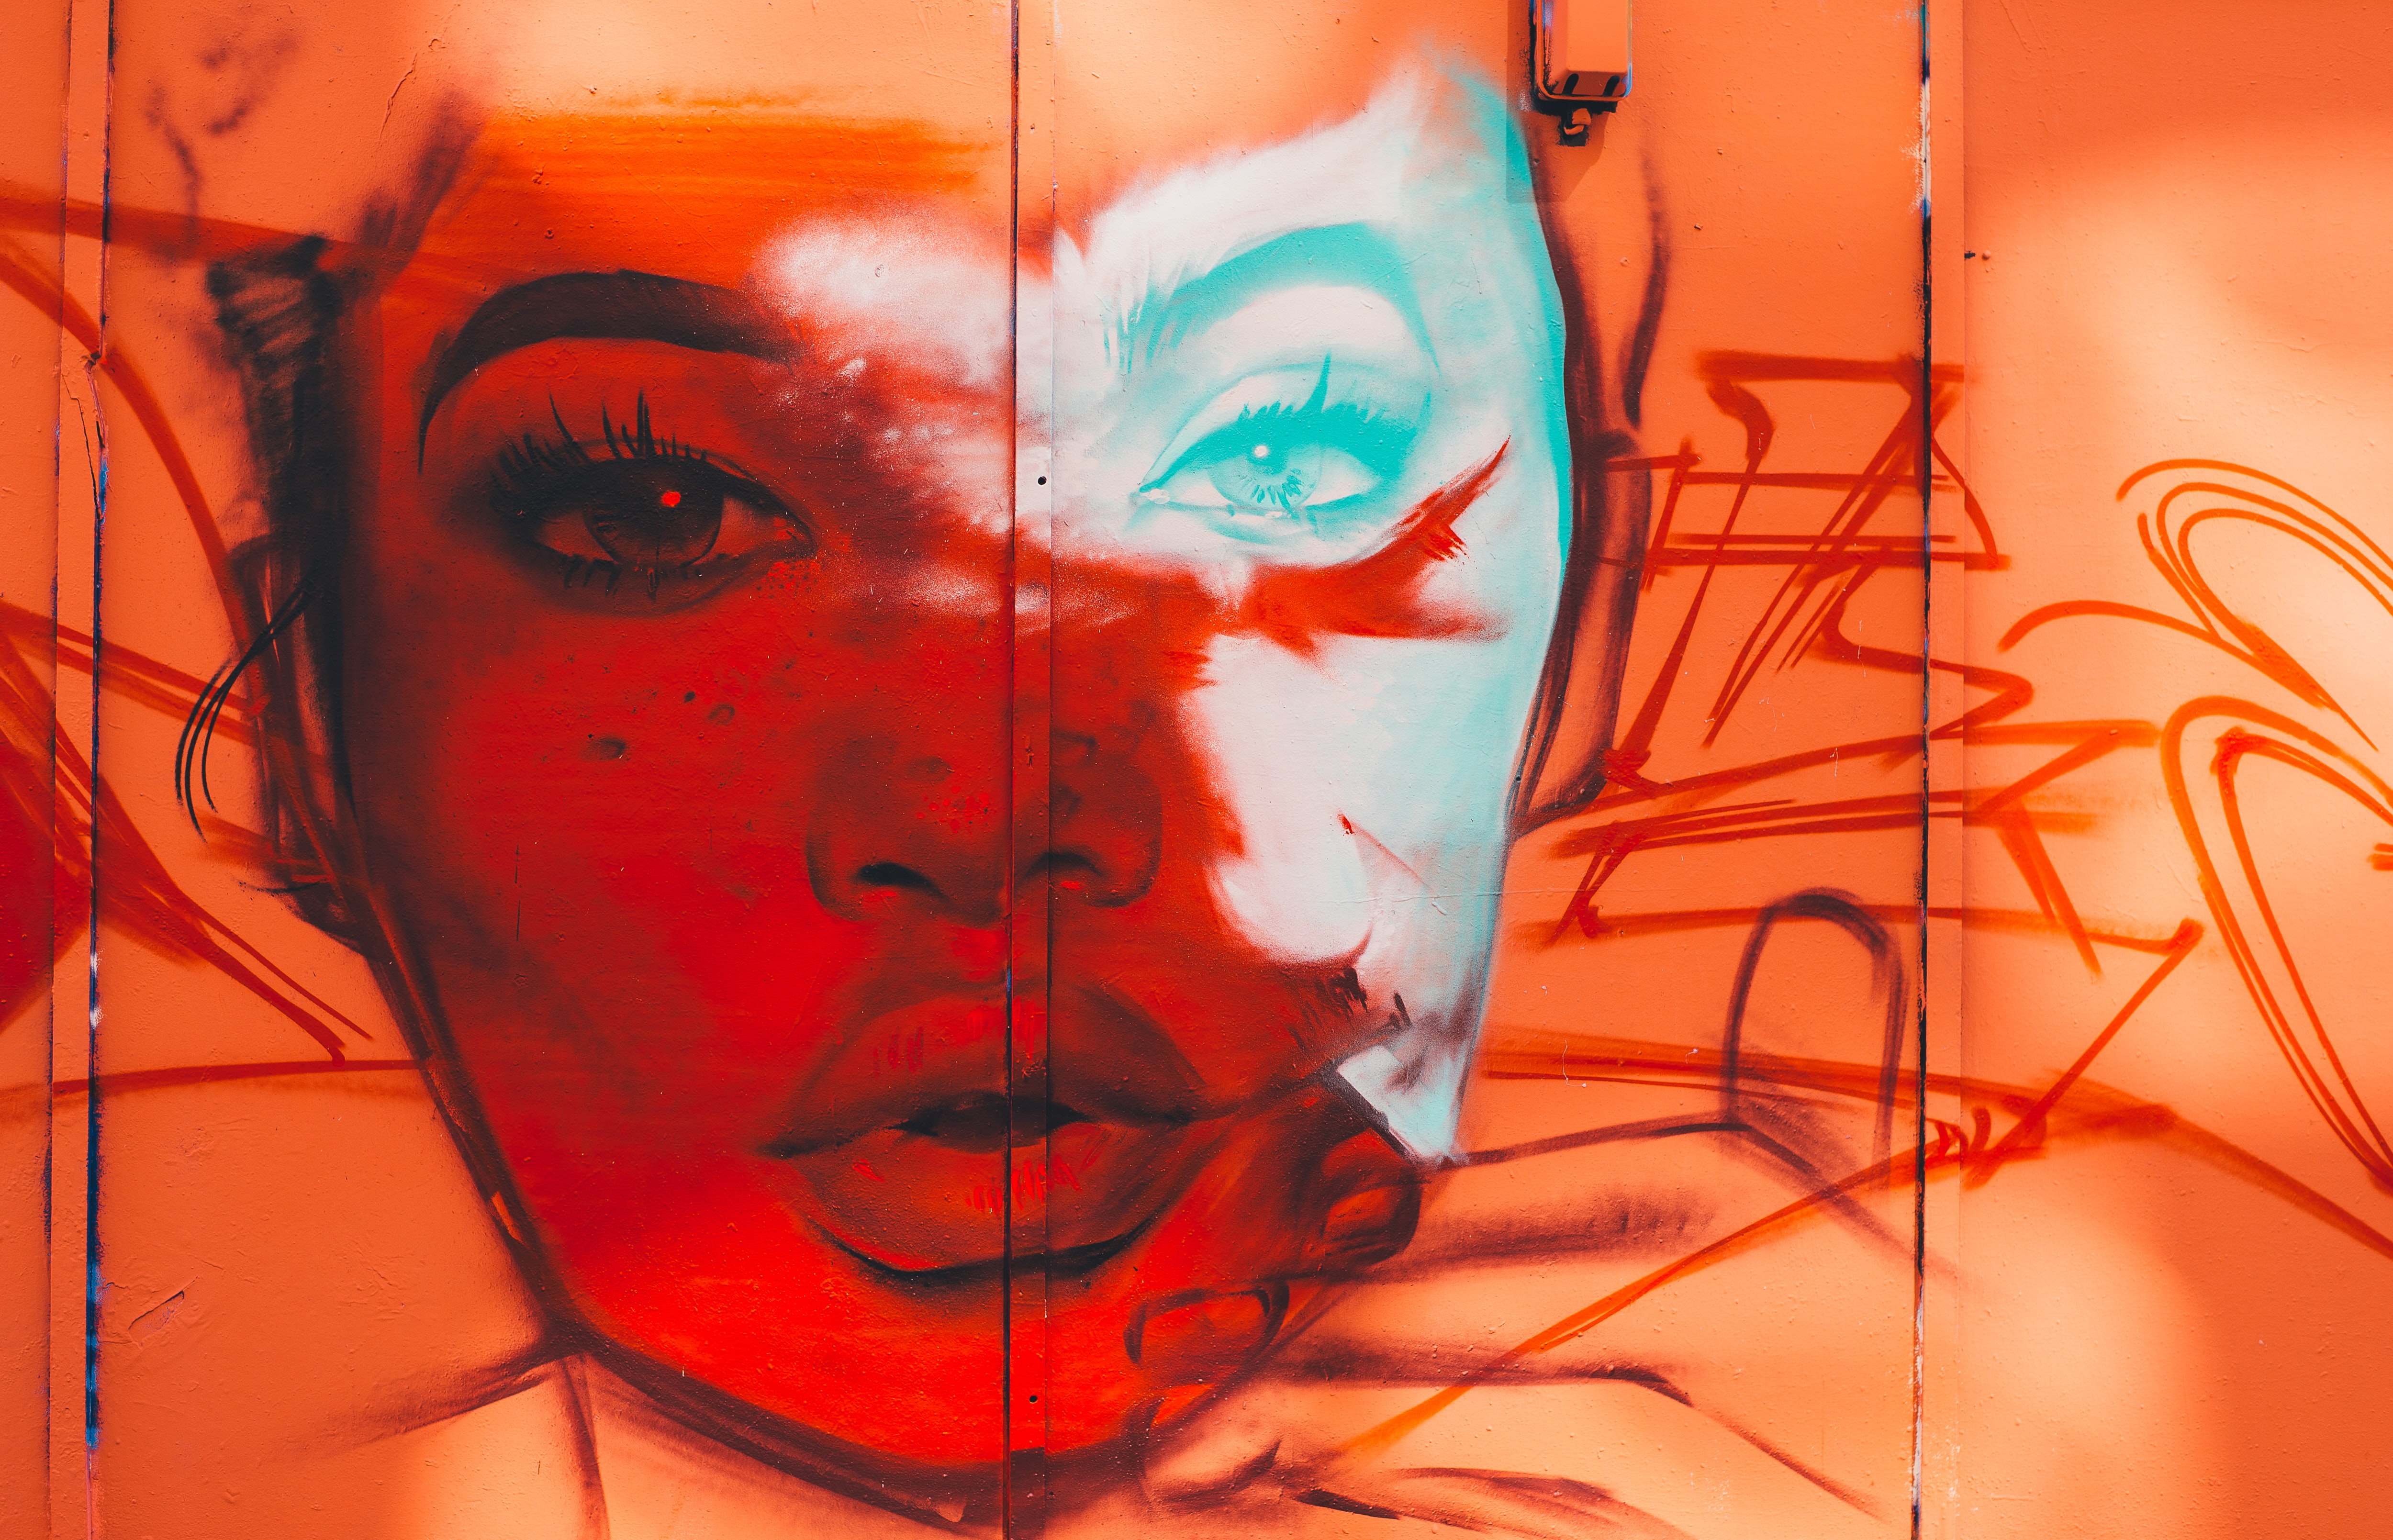 An intriguing red face graffiti painting on a wall.